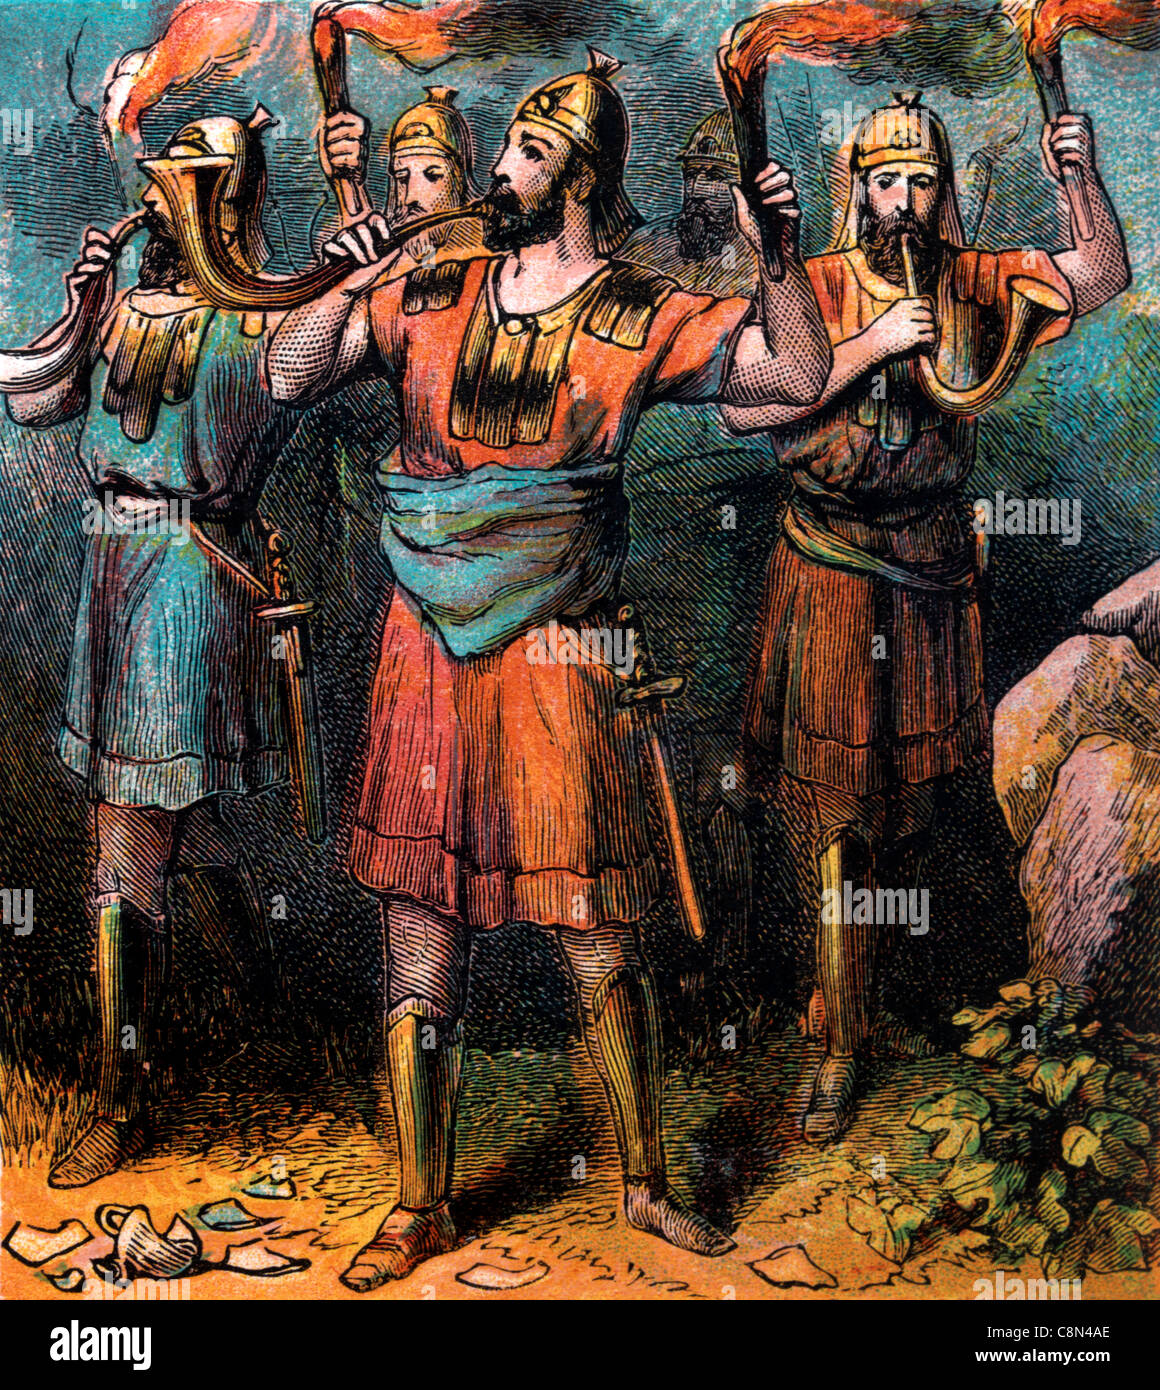 Bible Stories- Illustration Of Gideon's Army Holding Torches And Blowing Trumpets - Stock Image